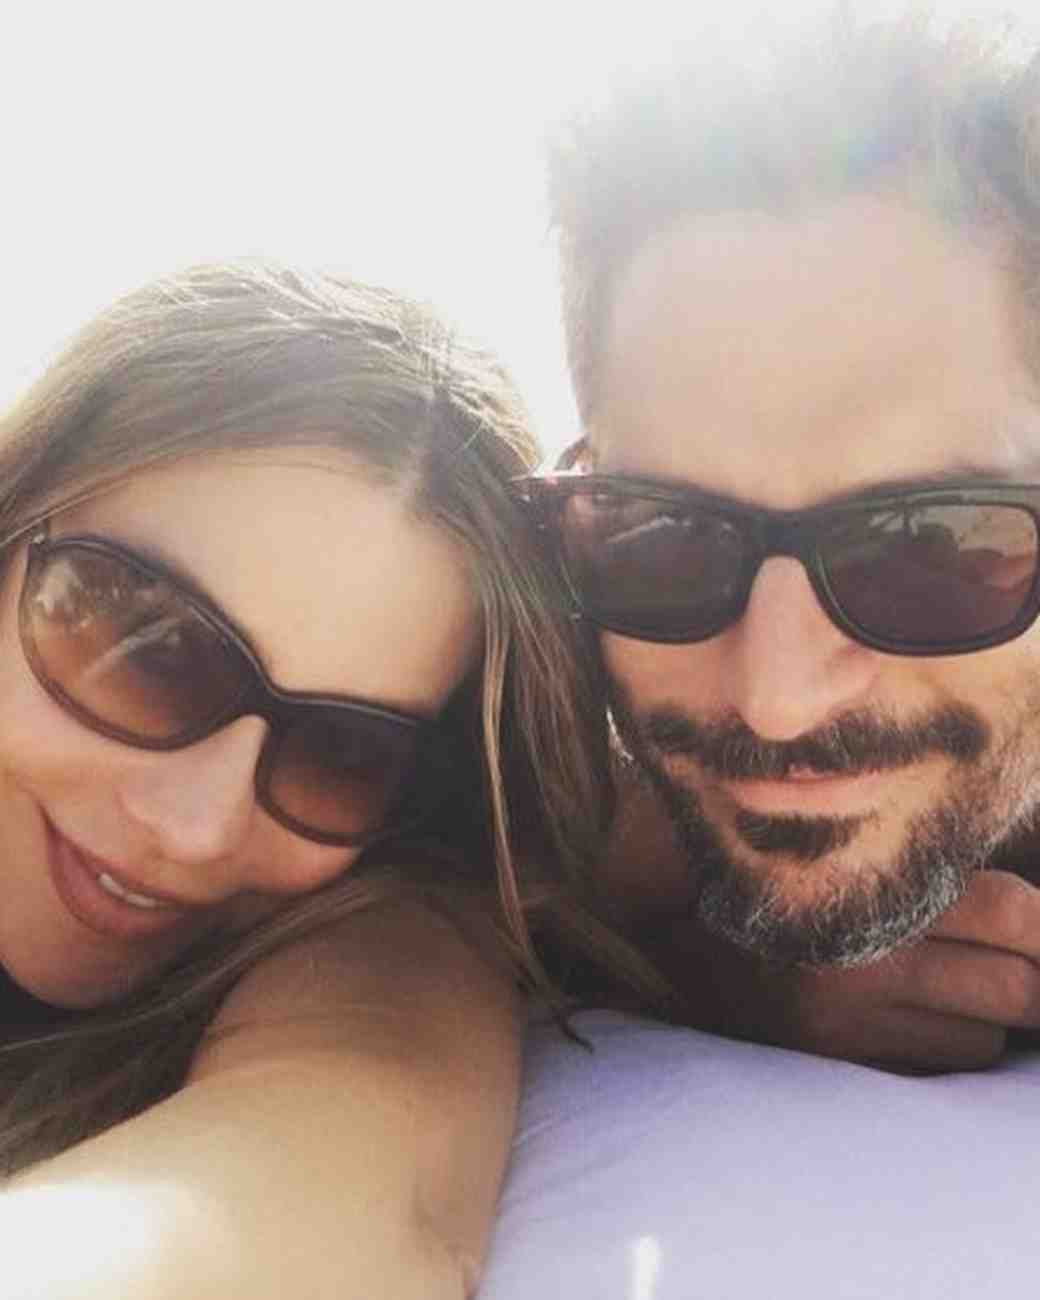 Sofia Vergara and Joe Manganiello on Honeymoon in Turks and Caicos